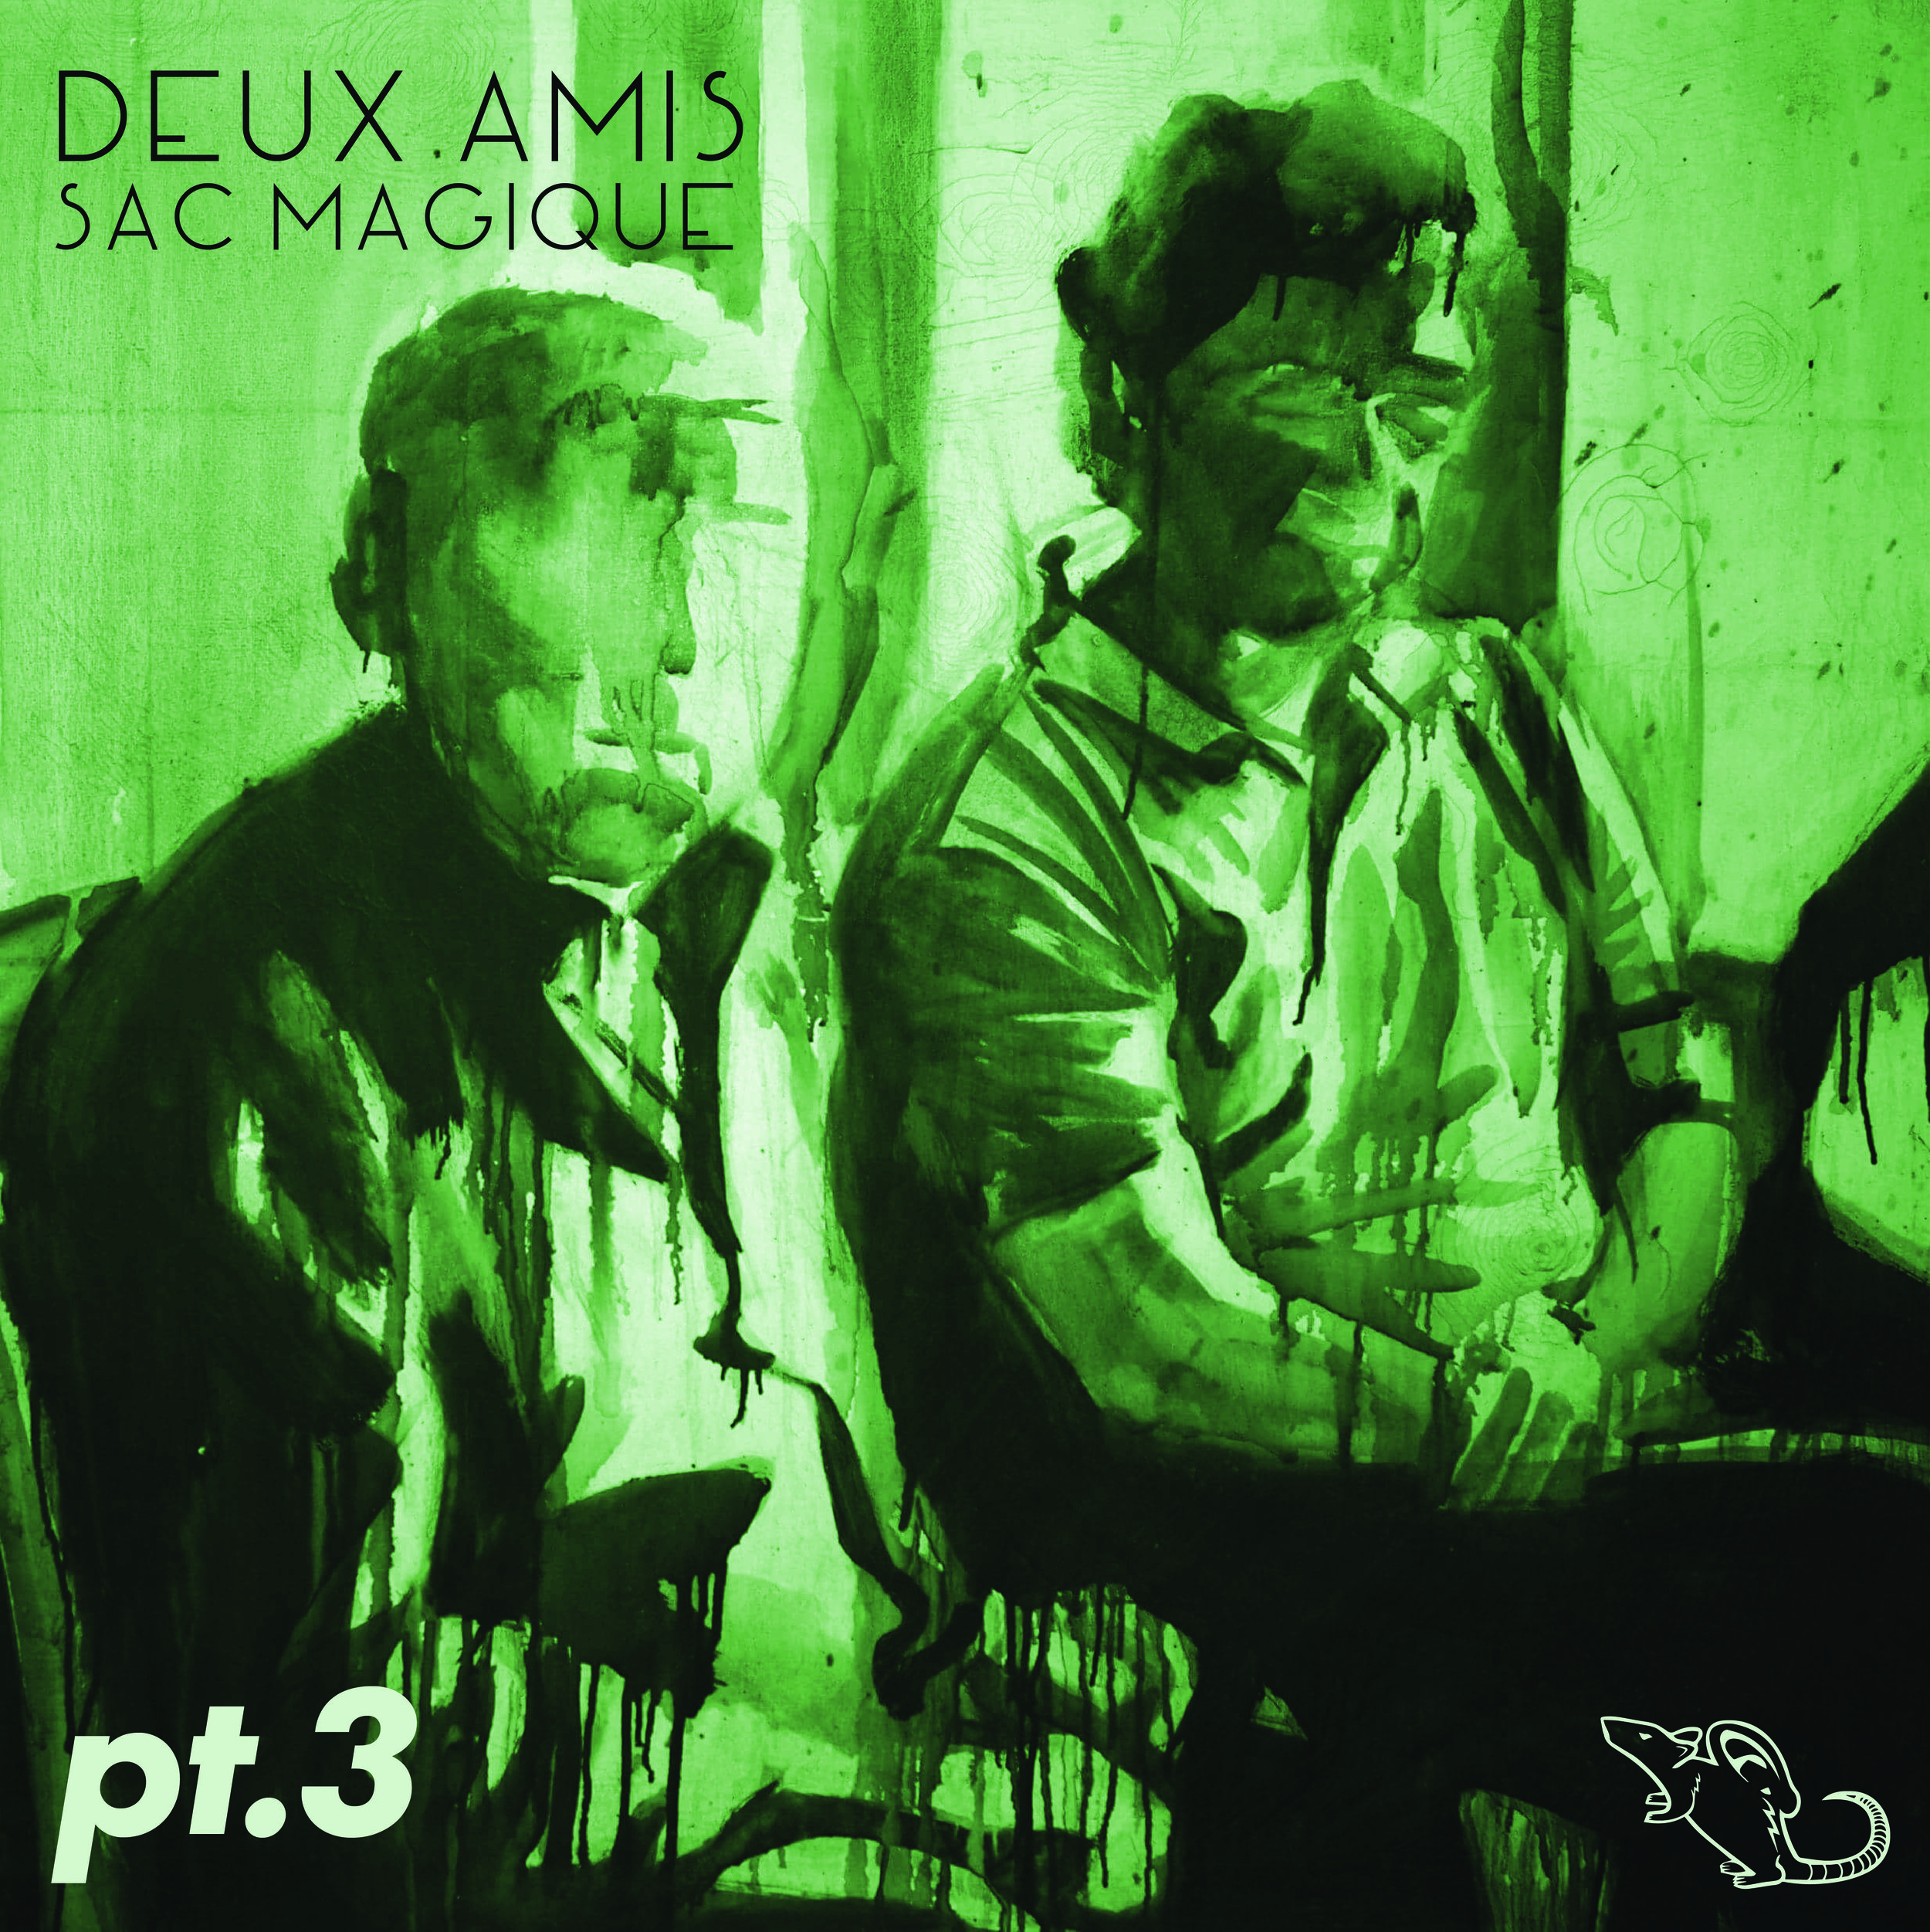 Out Now!!! Deux Amis - Sac Magique pt3Download for free @ - https://labratrecords.bandcamp.com/album/sac-magique-pt3